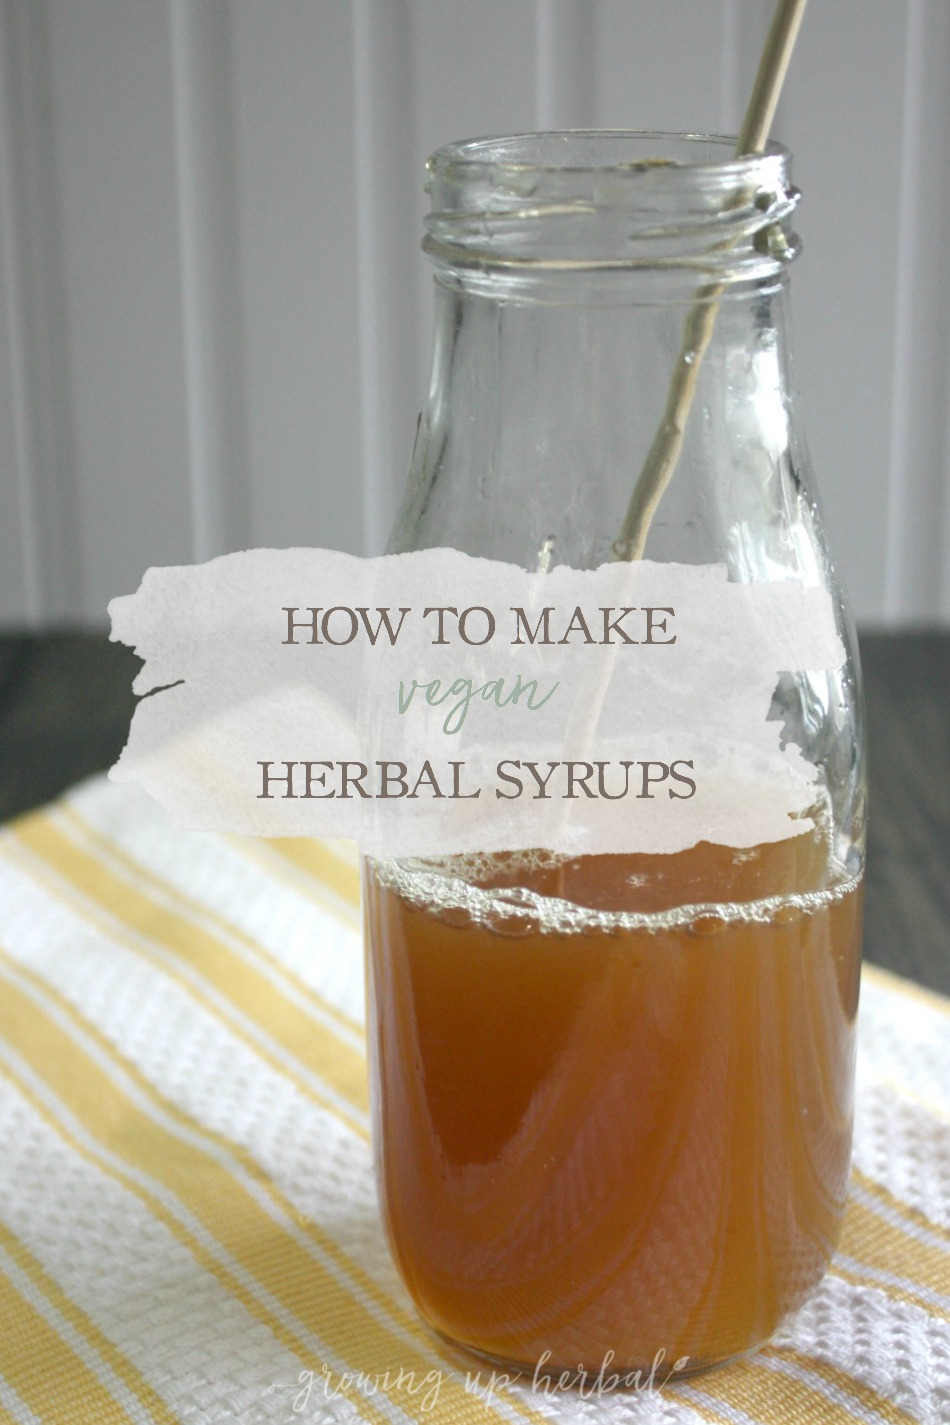 How To Make Vegan Herbal Syrup | Growing Up Herbal | If you're a vegan and are interested in making vegan herbal syrups, you'll find several alternatives to honey detailed in this article.